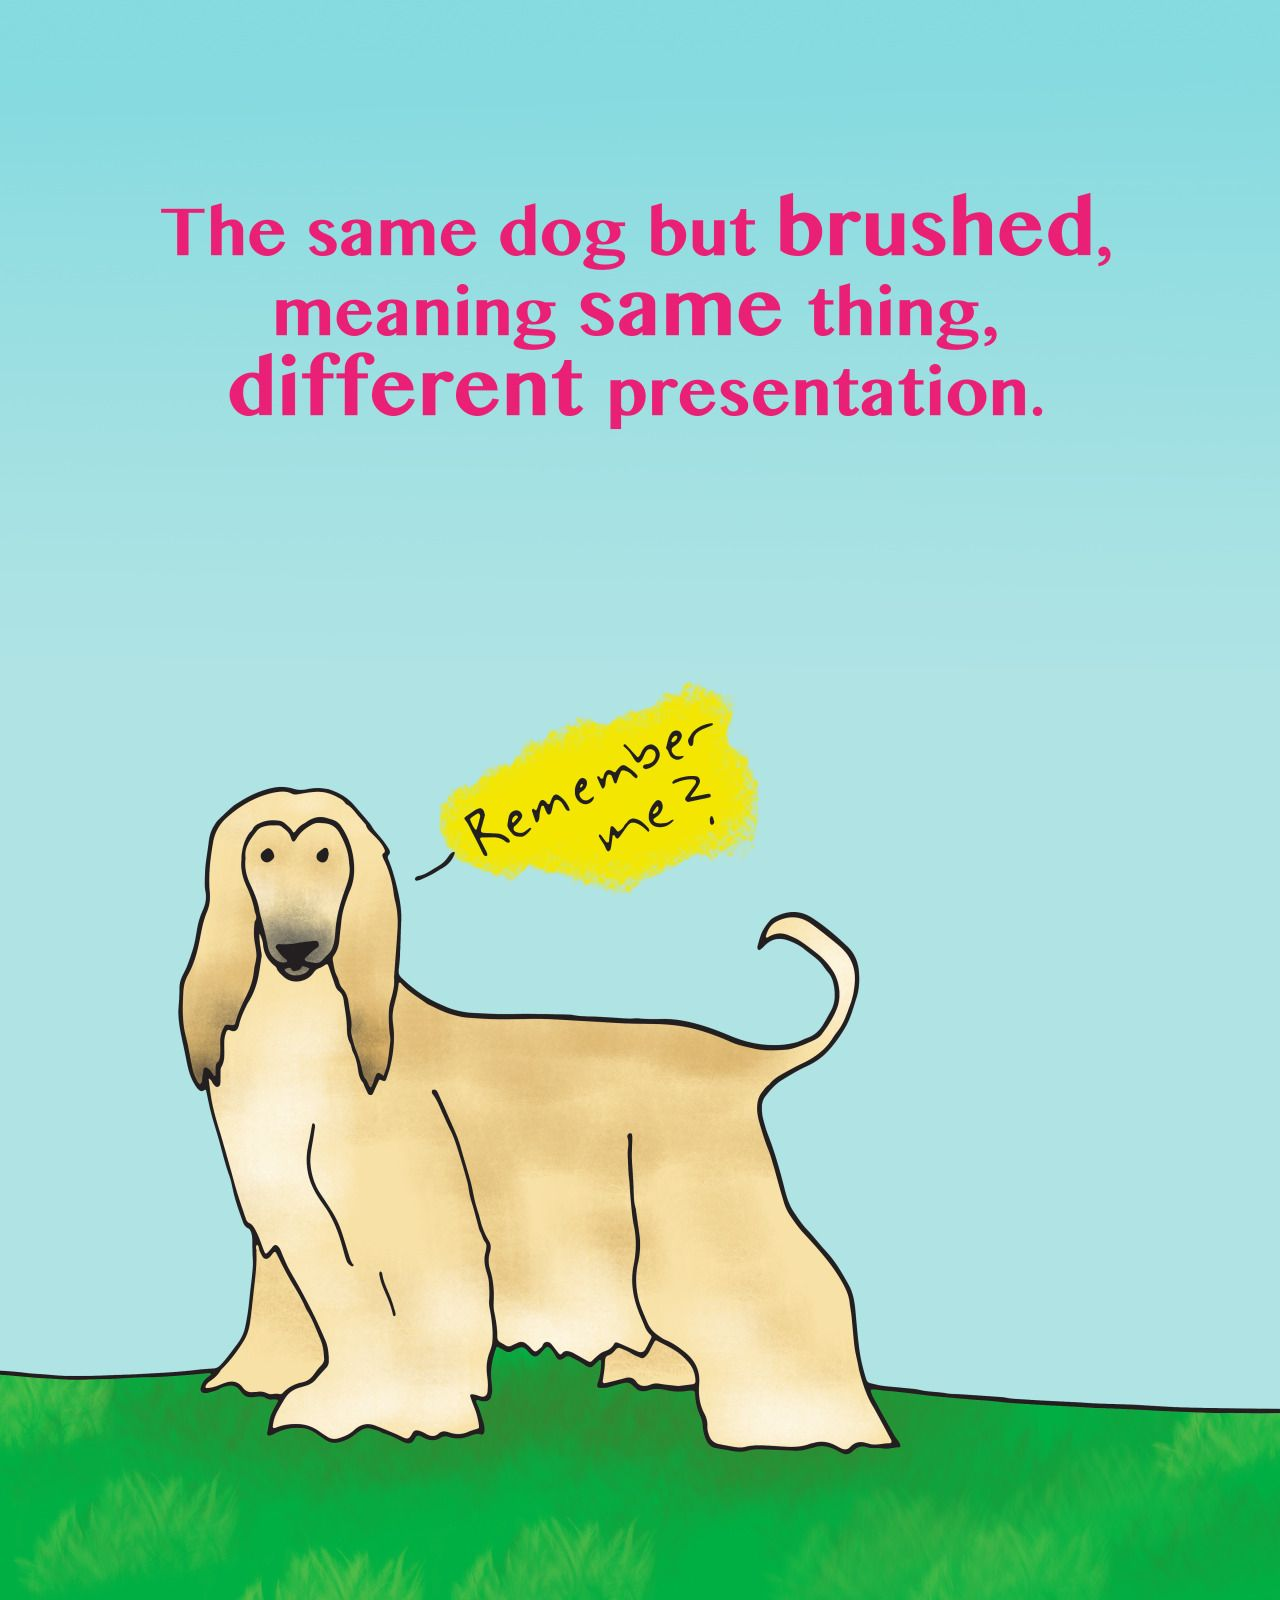 El mismo perro pero peinado. Translation: The same dog but brushed ...